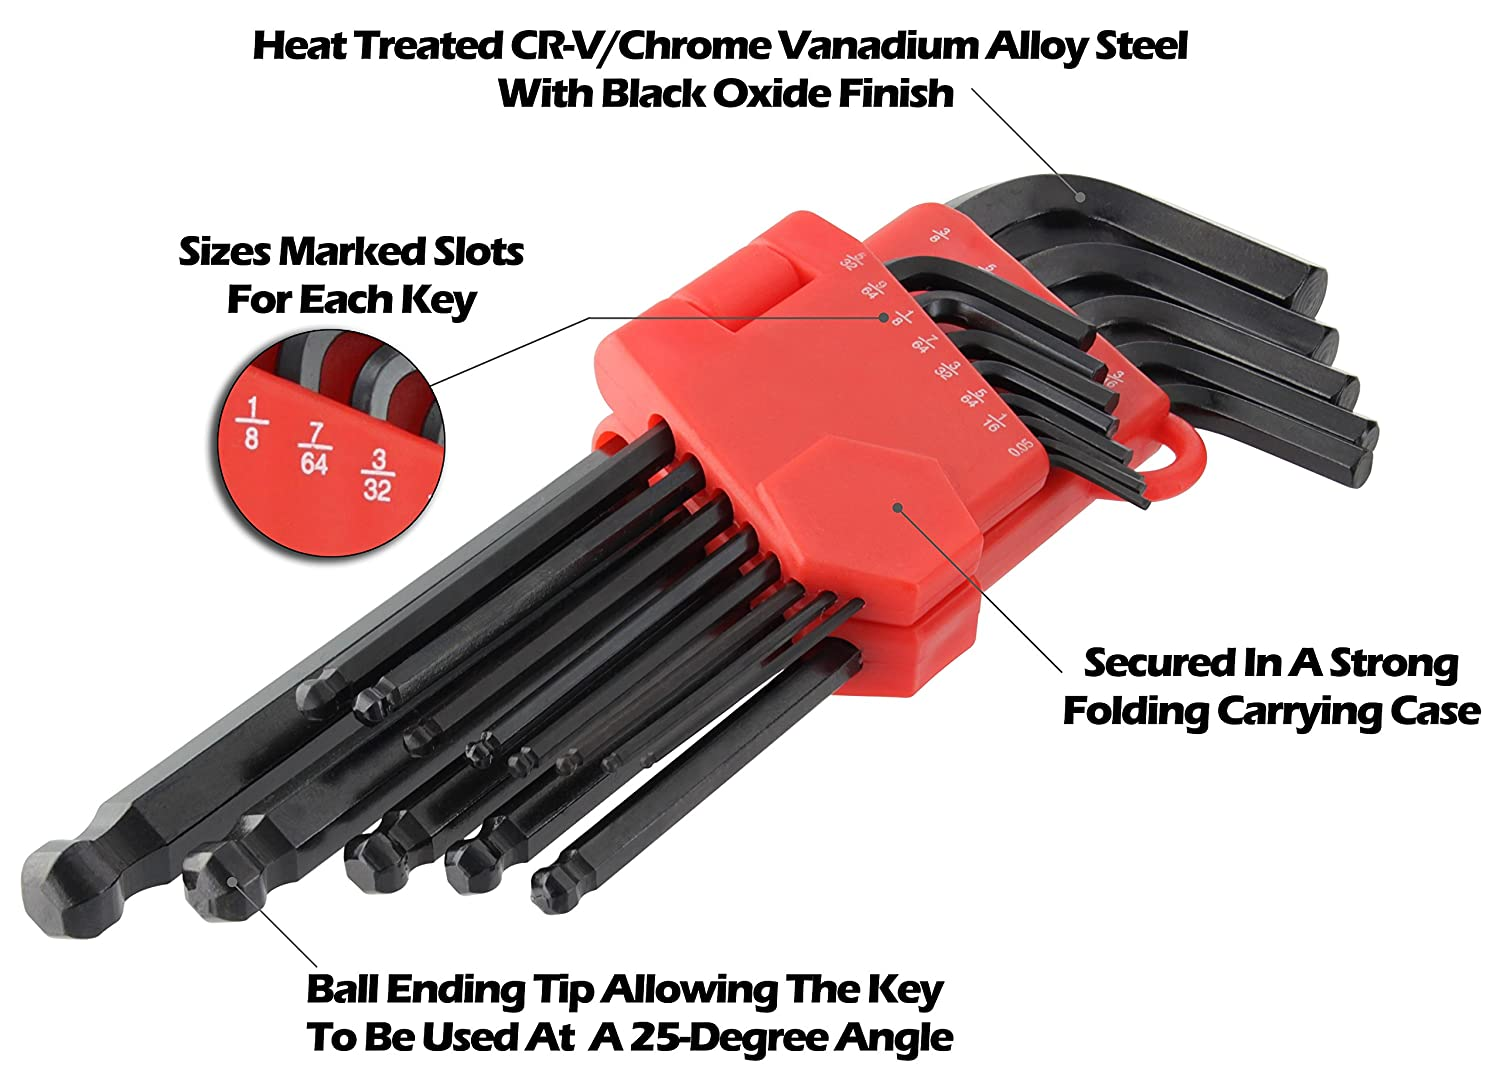 Drixet Long Arm Ball Point Hex Socket Driver Allen Key SAE-Inch /& Metric Set with A Storage Case. 26 Piece